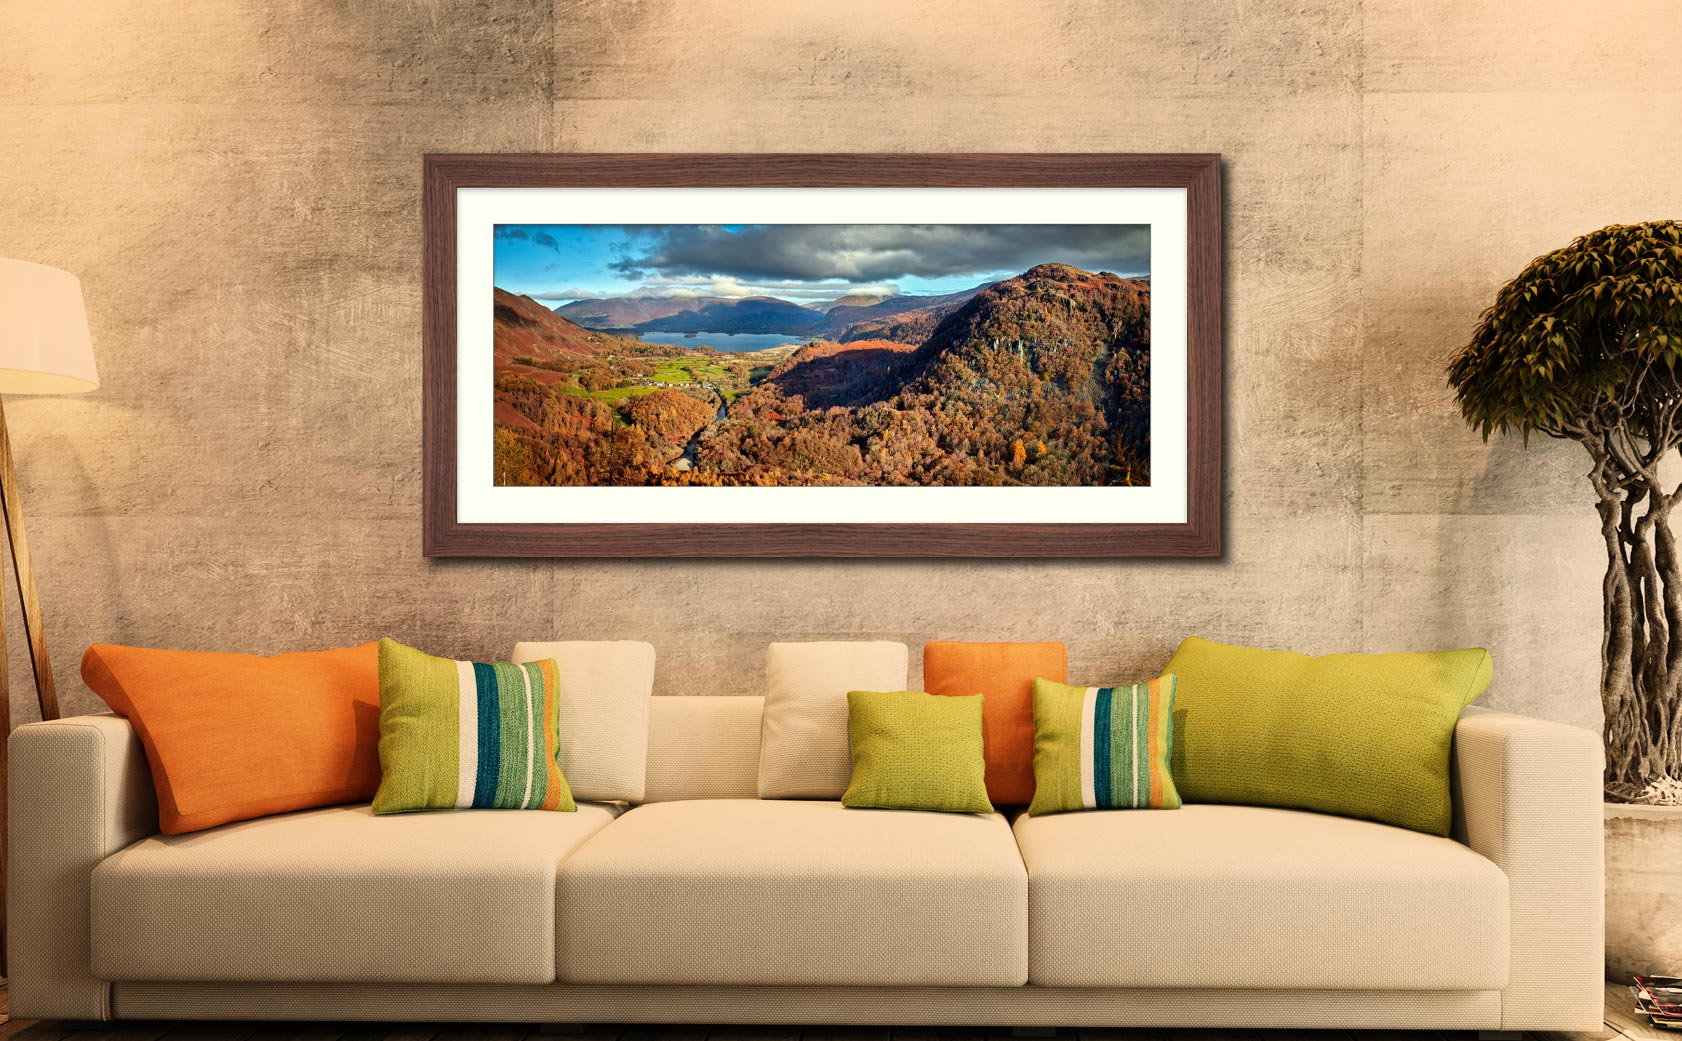 Derwent Water from Castle Crag - Framed Print with Mount on Wall